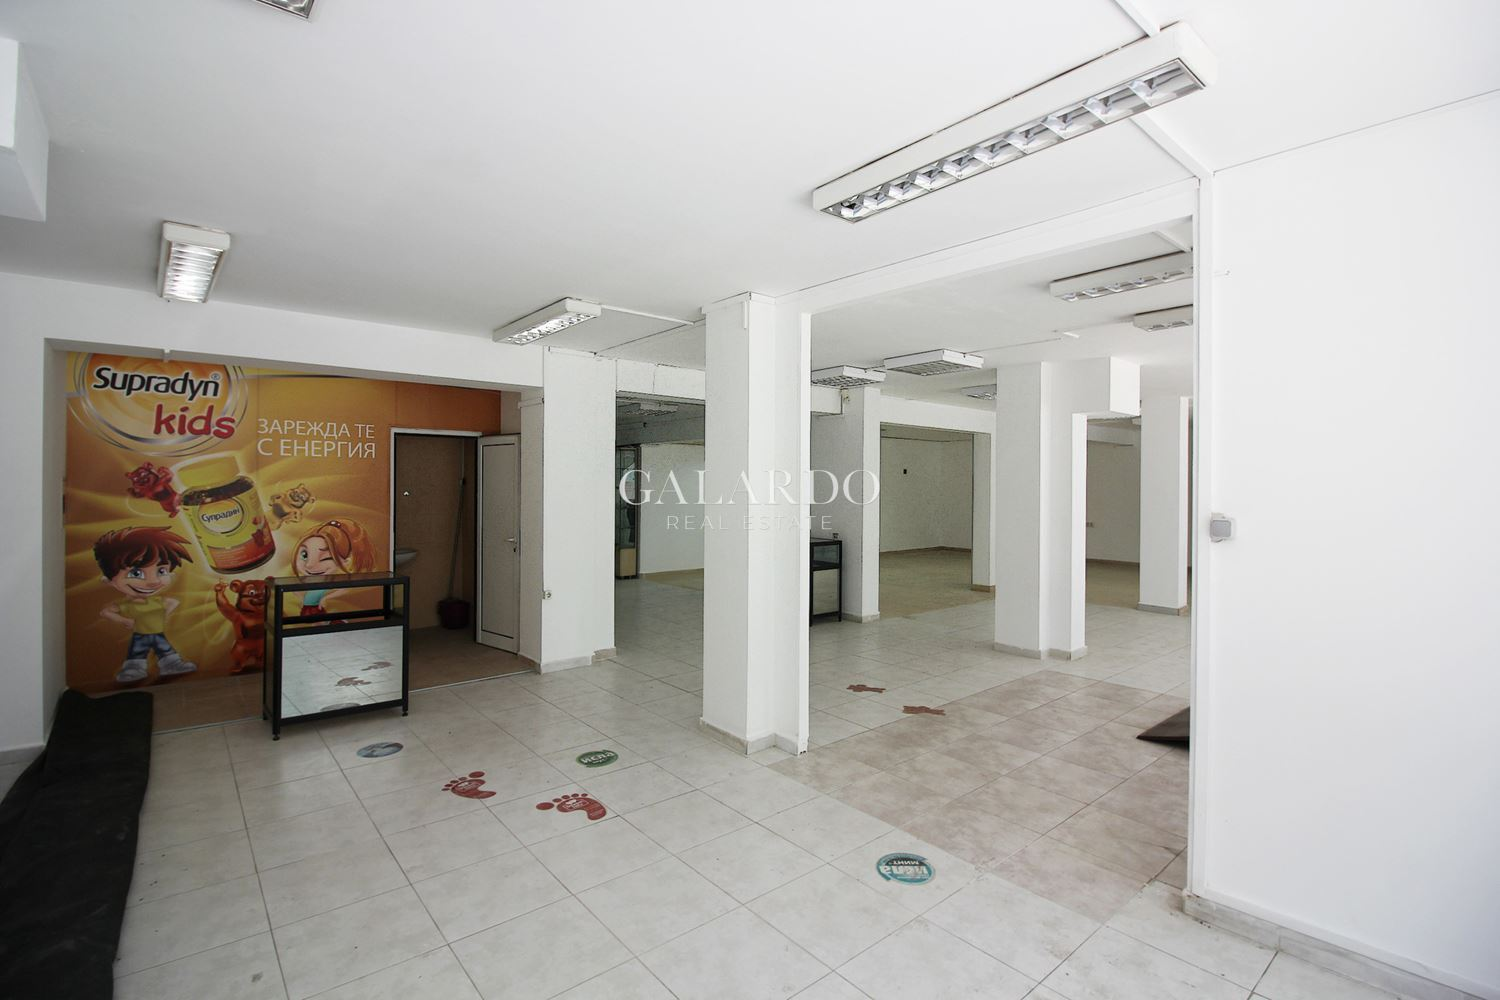 Commercial property in the area of South Park and Paradise Mall